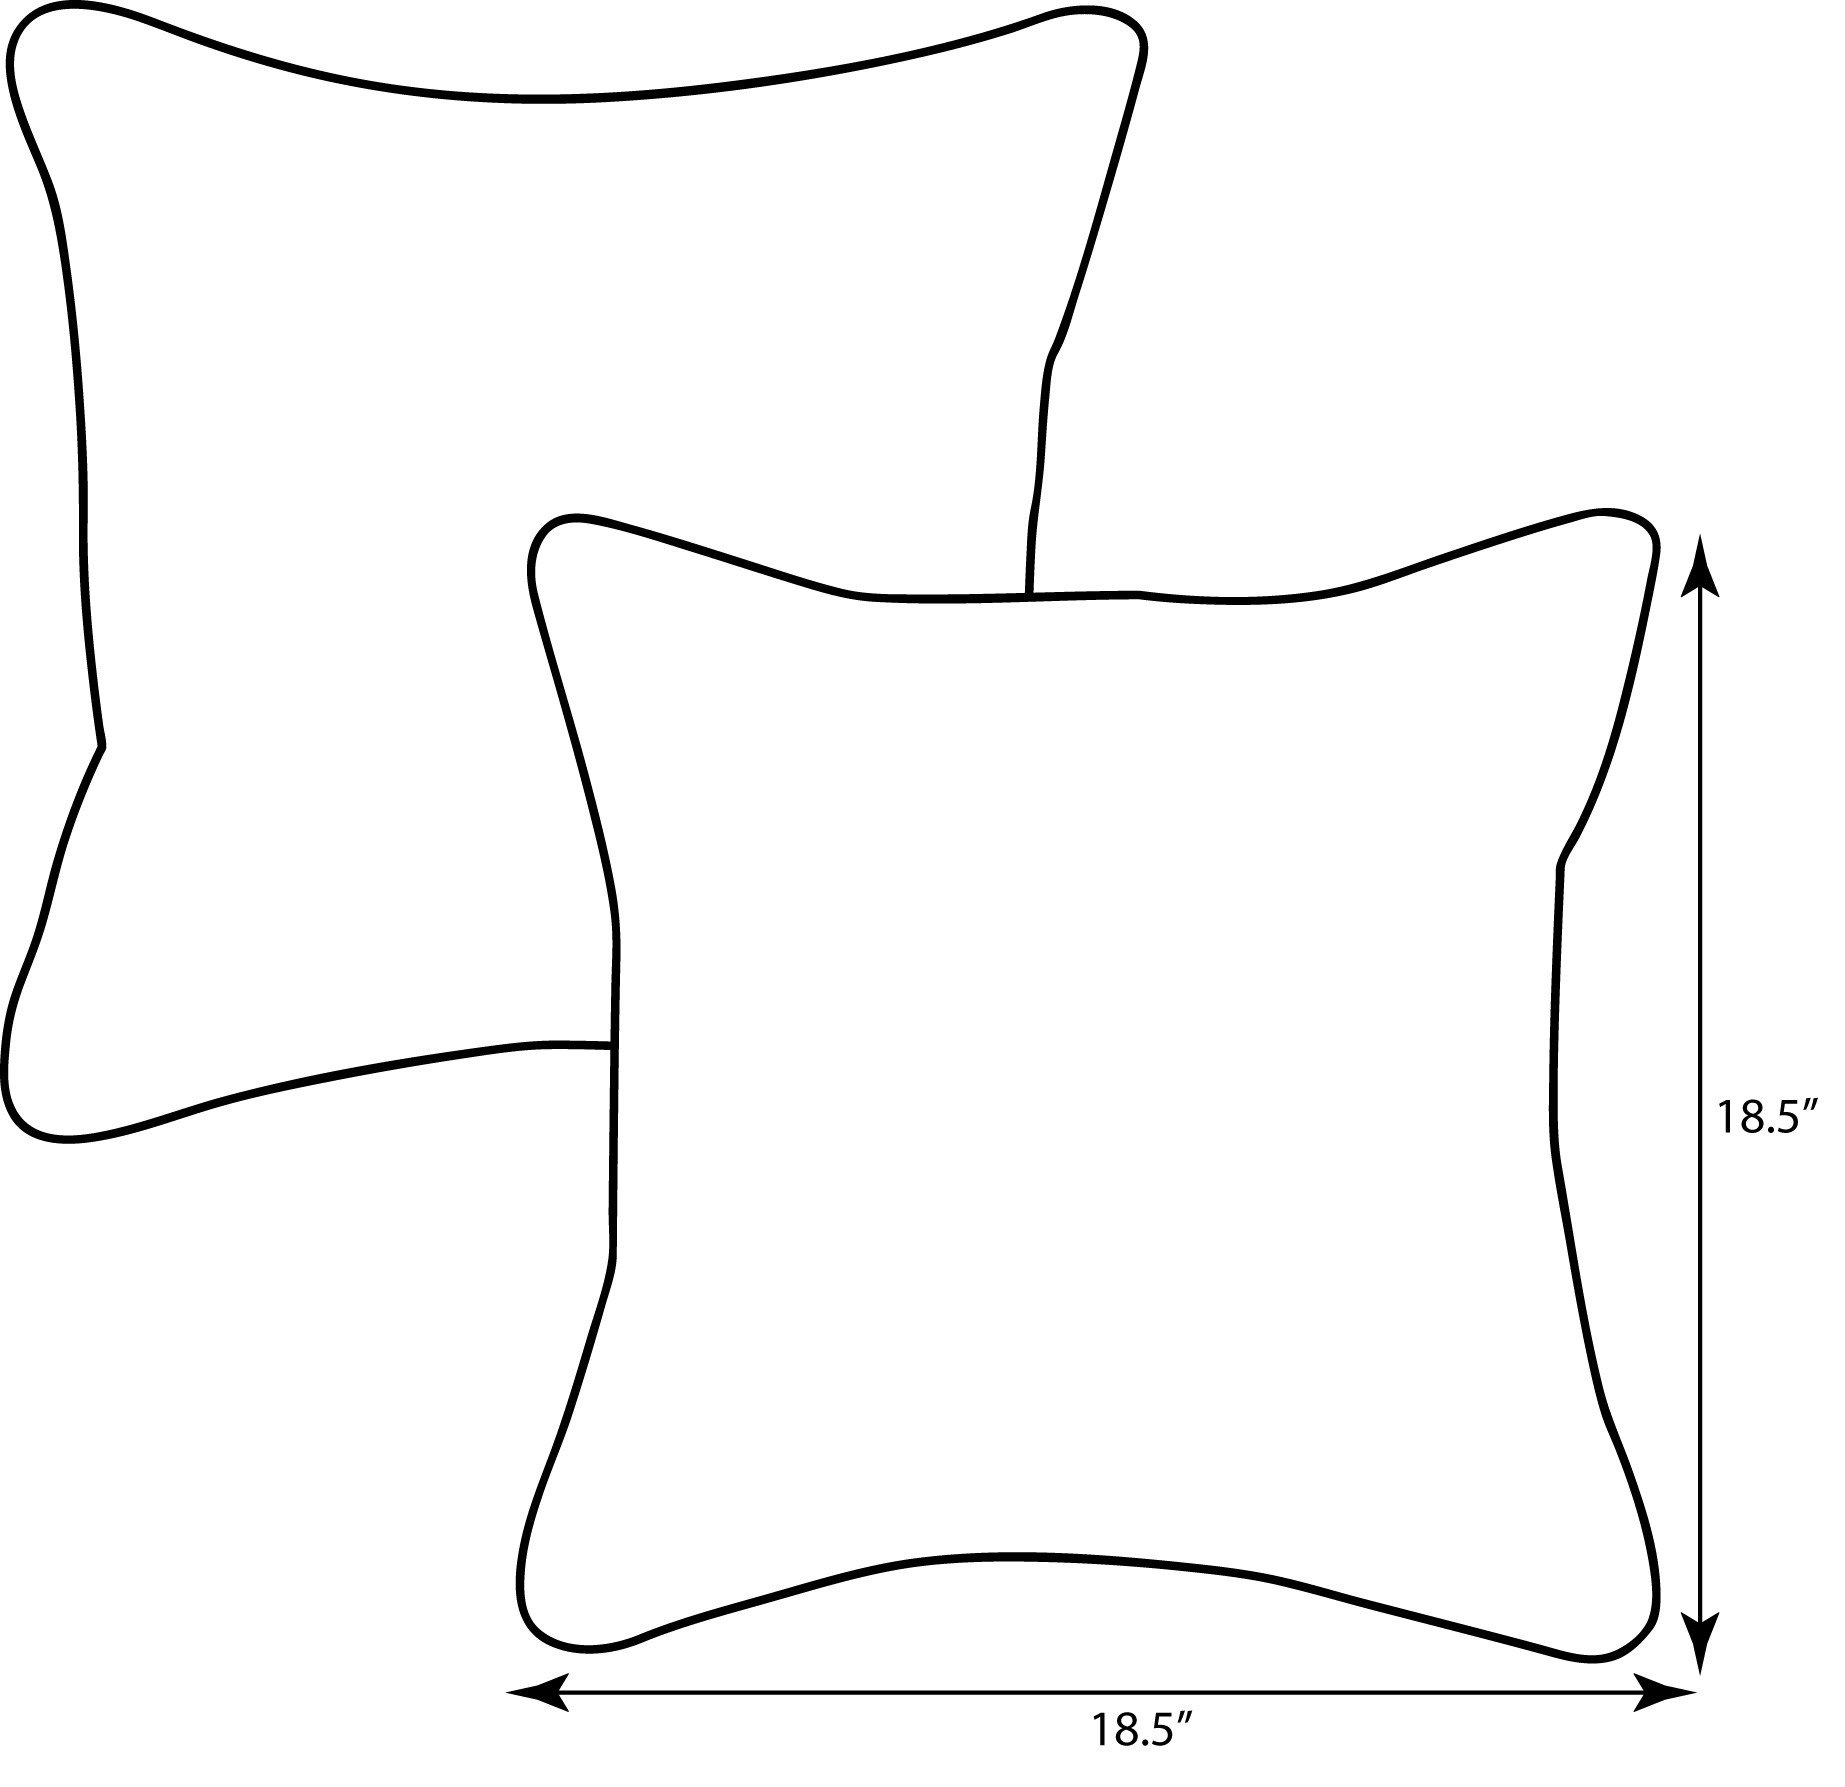 "Pillow Perfect Outdoor/Indoor Hadia Sunset Throw Pillow (Set of 2), 18.5"" - Includes two (2) outdoor pillows, resists weather and fading in sunlight; Suitable for indoor and outdoor use Plush Fill - 100-percent polyester fiber filling Edges of outdoor pillows are trimmed with matching fabric and cord to sit perfectly on your outdoor patio furniture - patio, outdoor-throw-pillows, outdoor-decor - 61sgAATYCNL -"